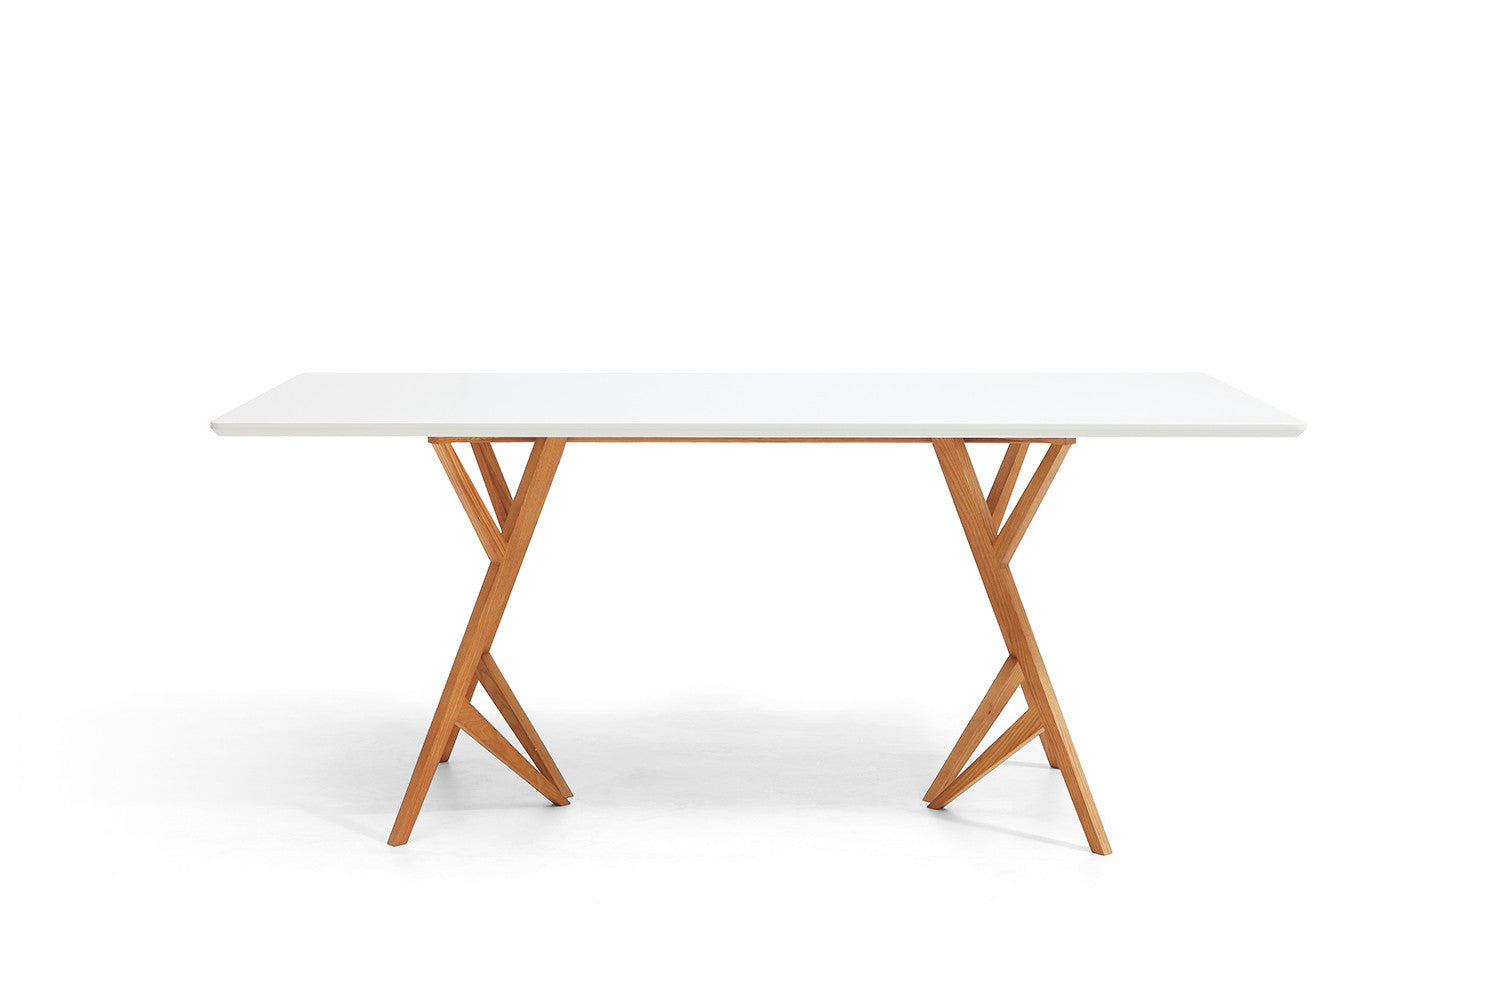 Table de salle manger design scandinave vispa dewarens for Table de salle manger en bois